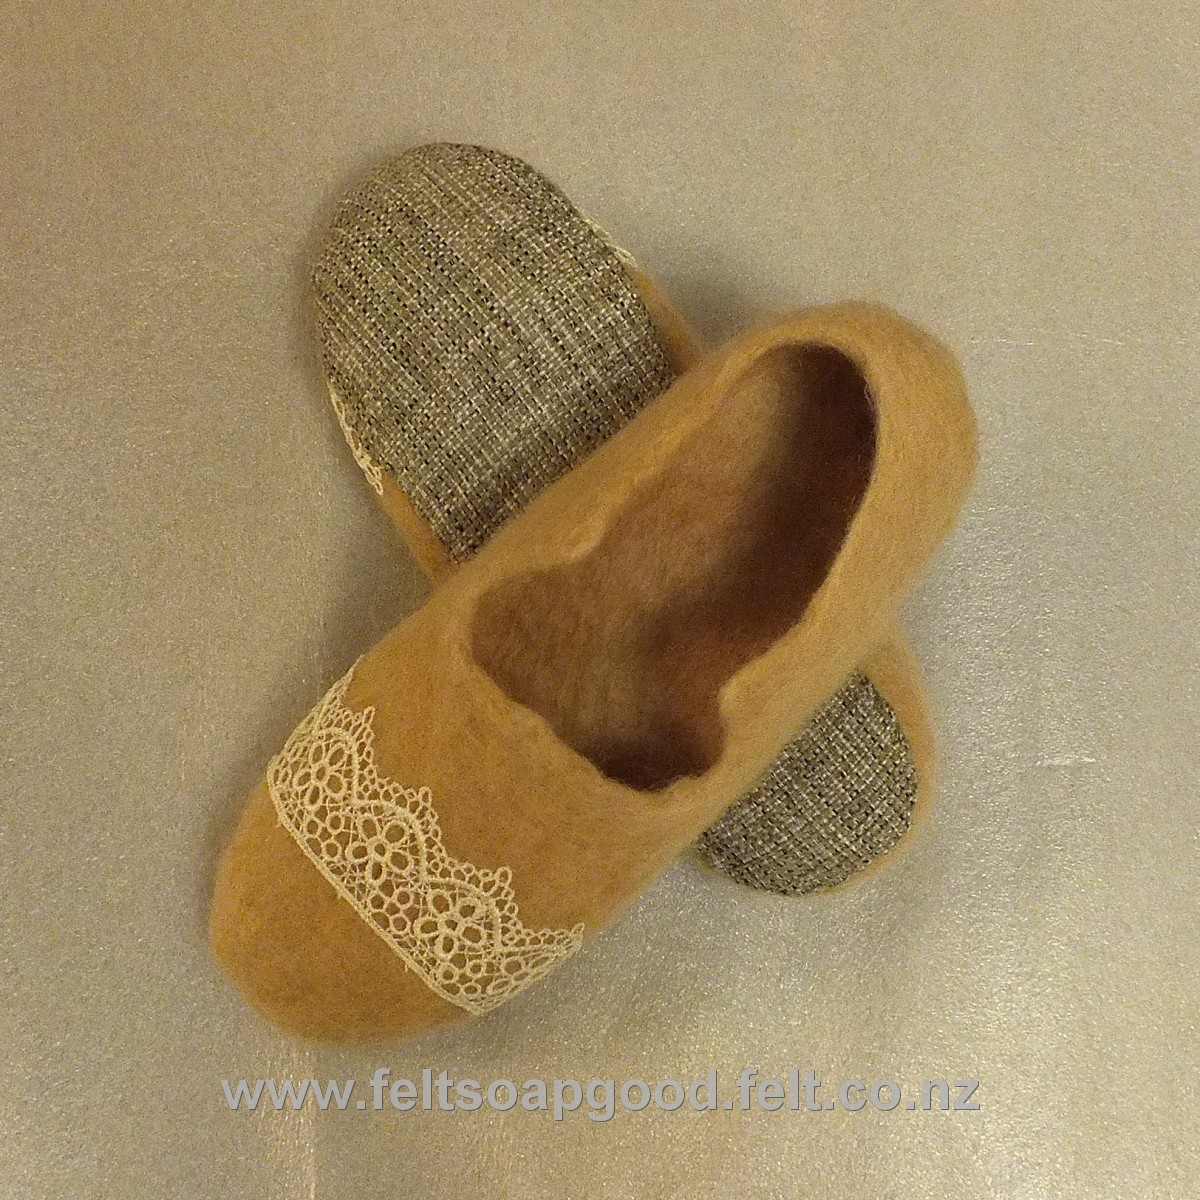 dedcf79e87c17 Felt slippers Organic 100 % New Zealand pure wool felting natural ...